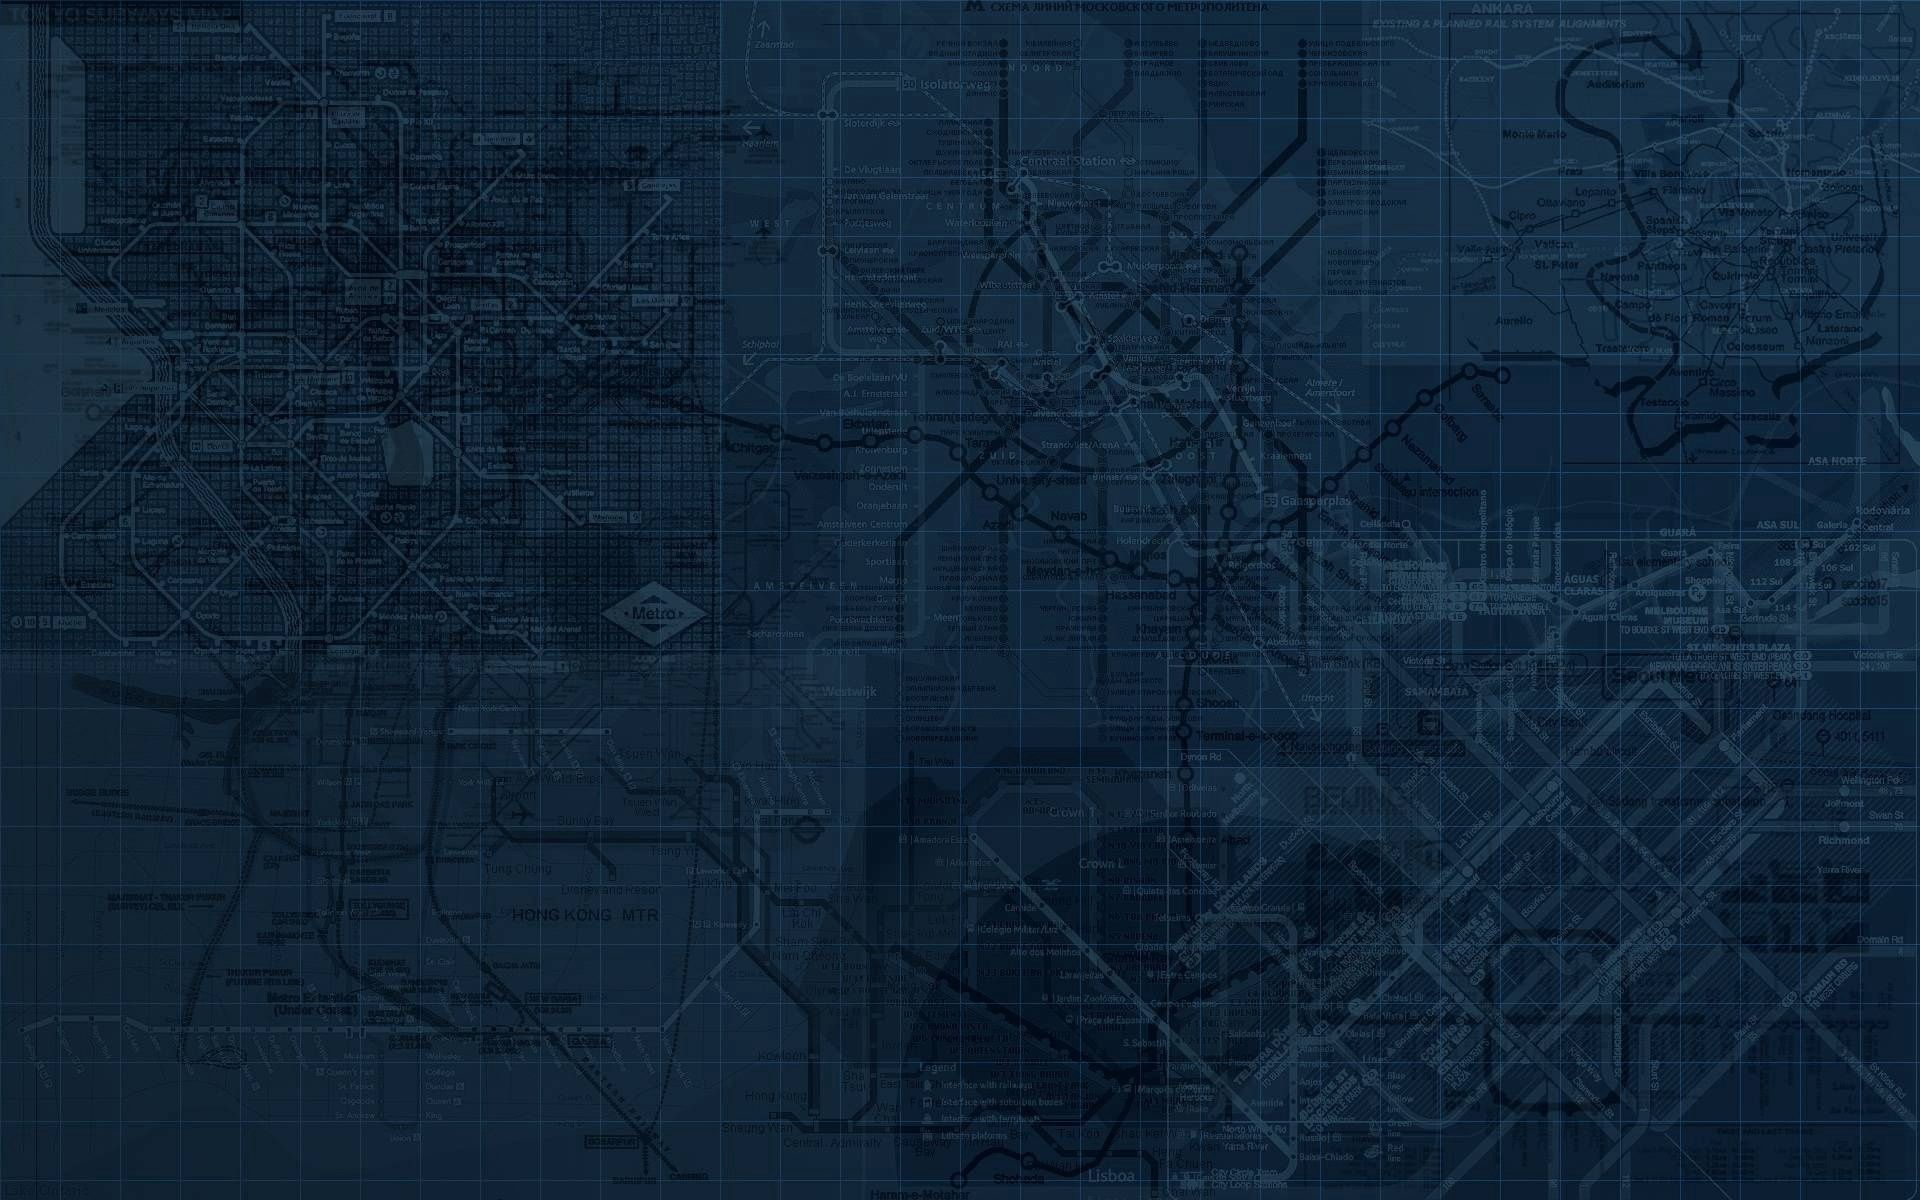 120812 download wallpaper Background, Dark, Texture, Lines, Textures, Stains, Spots, Map screensavers and pictures for free